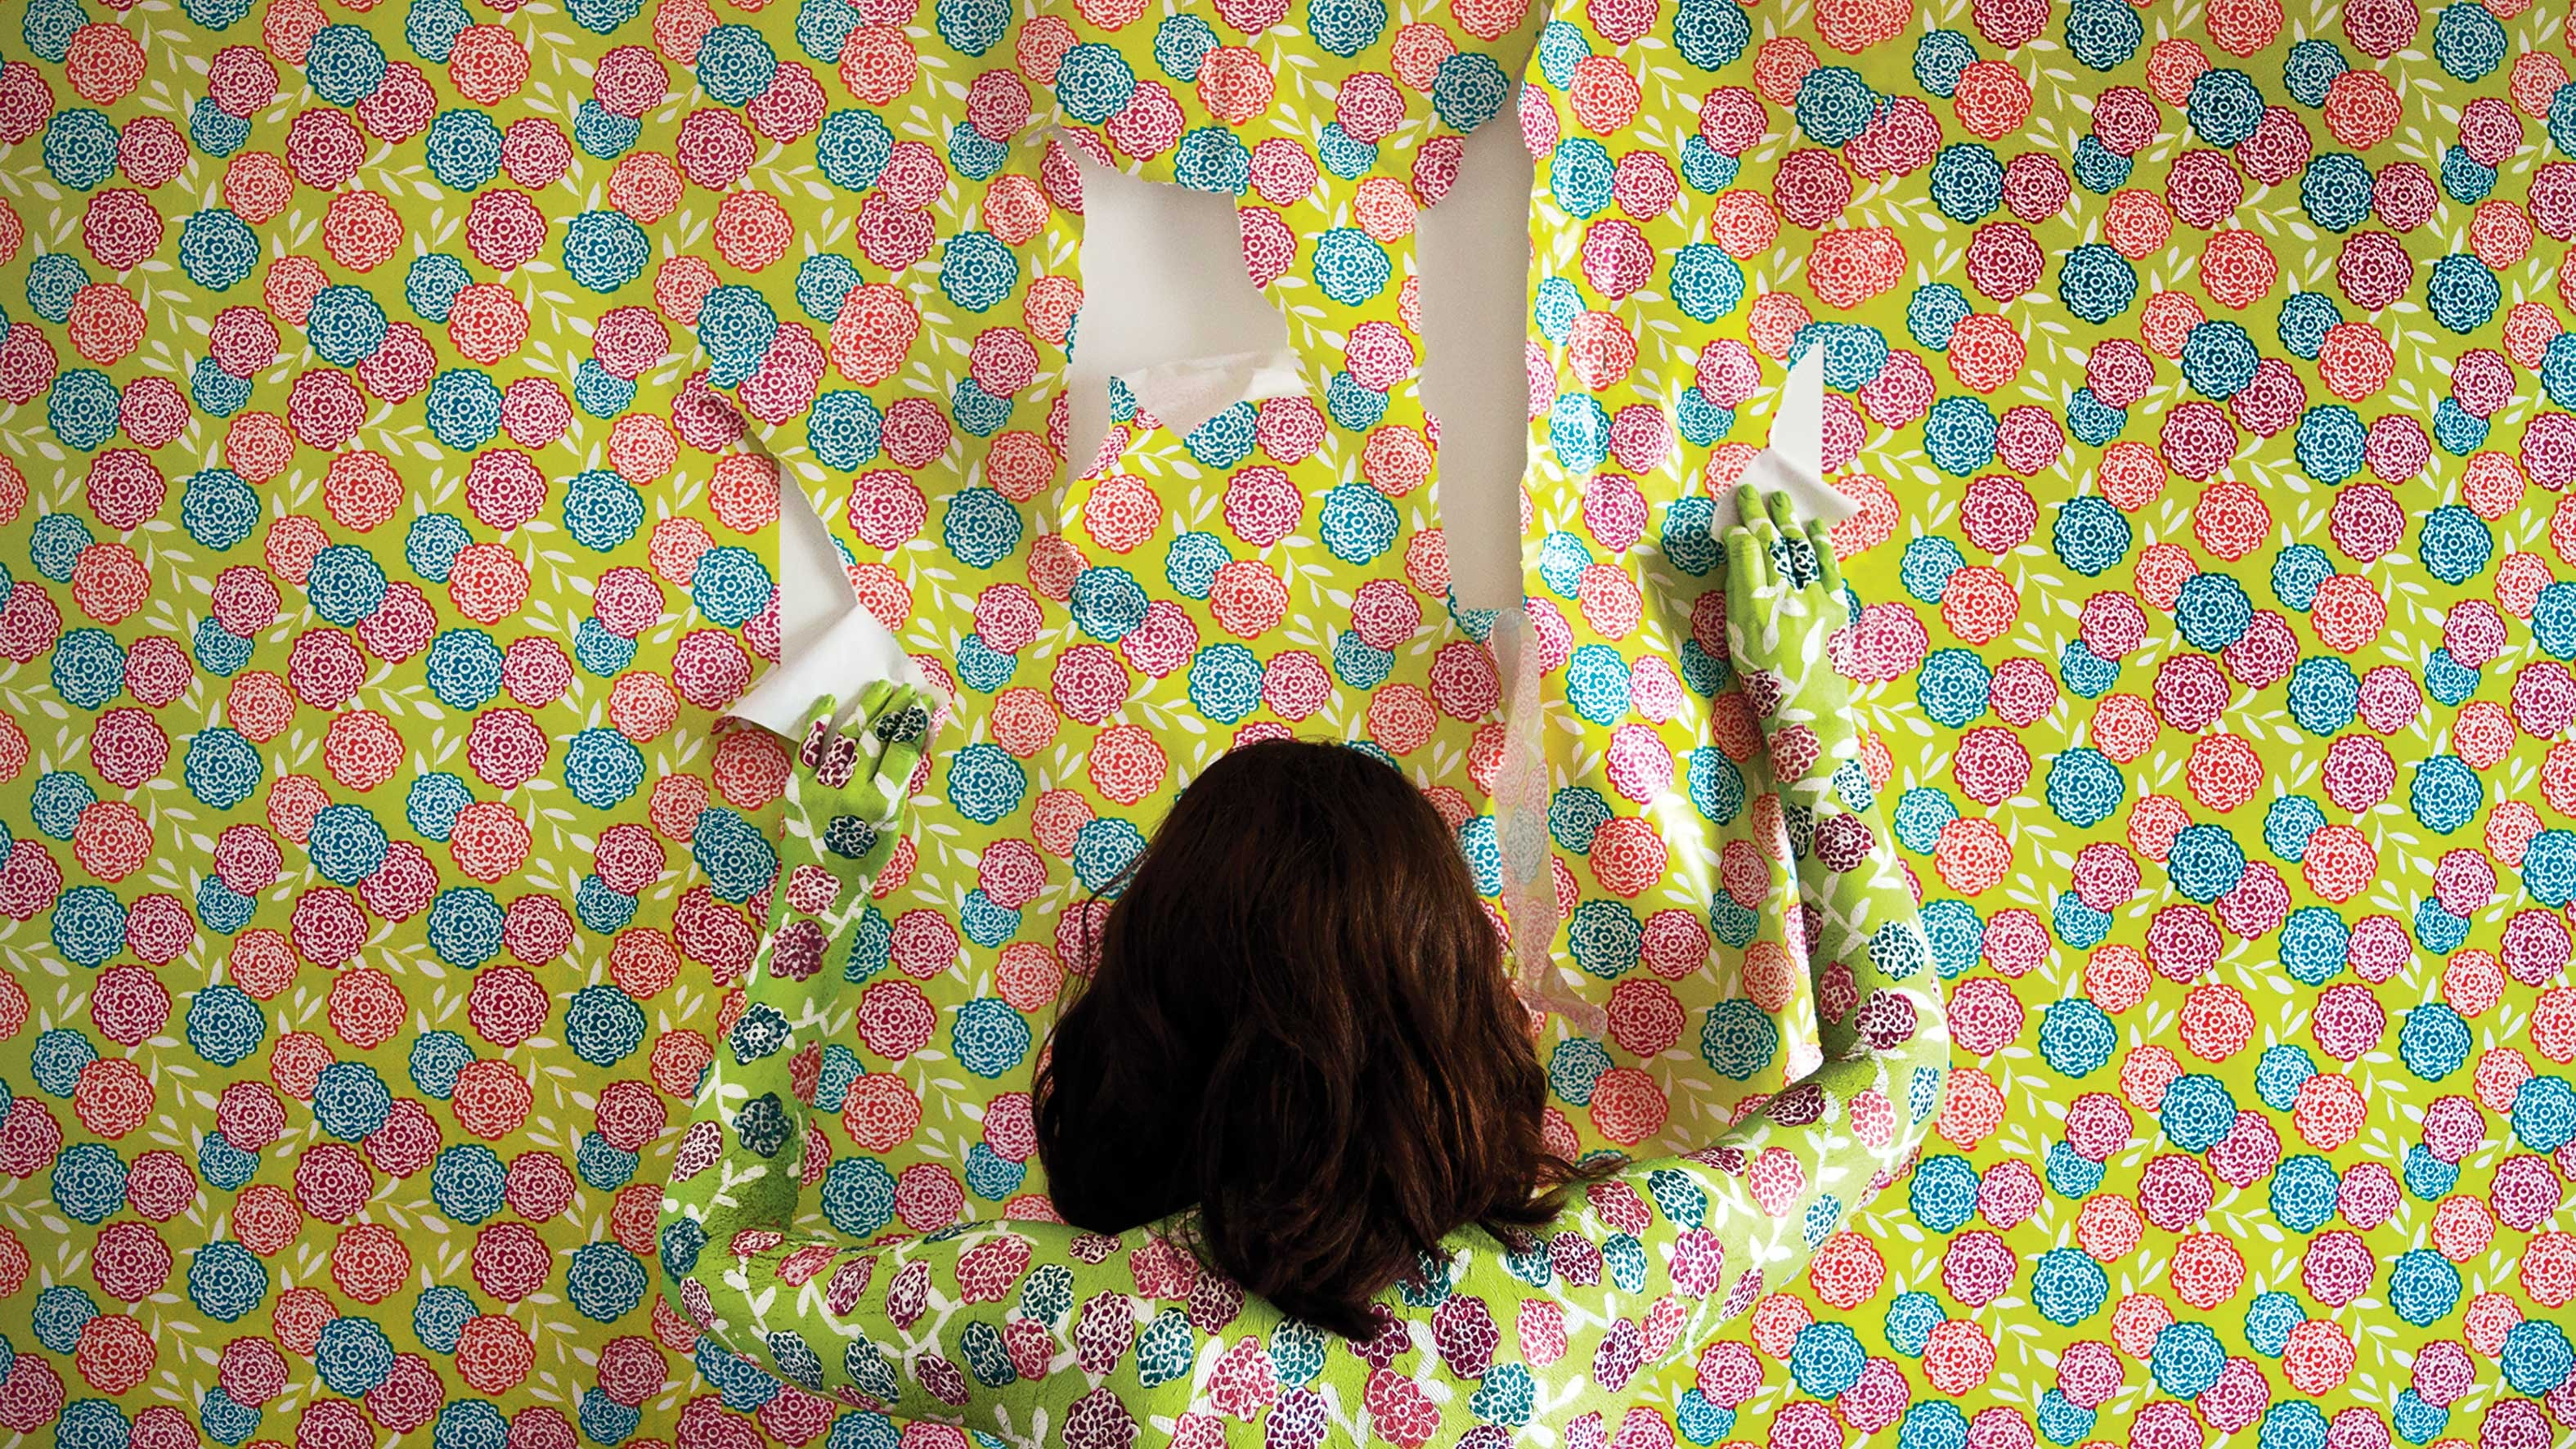 Person facing wall covered in colorful wallpaper.